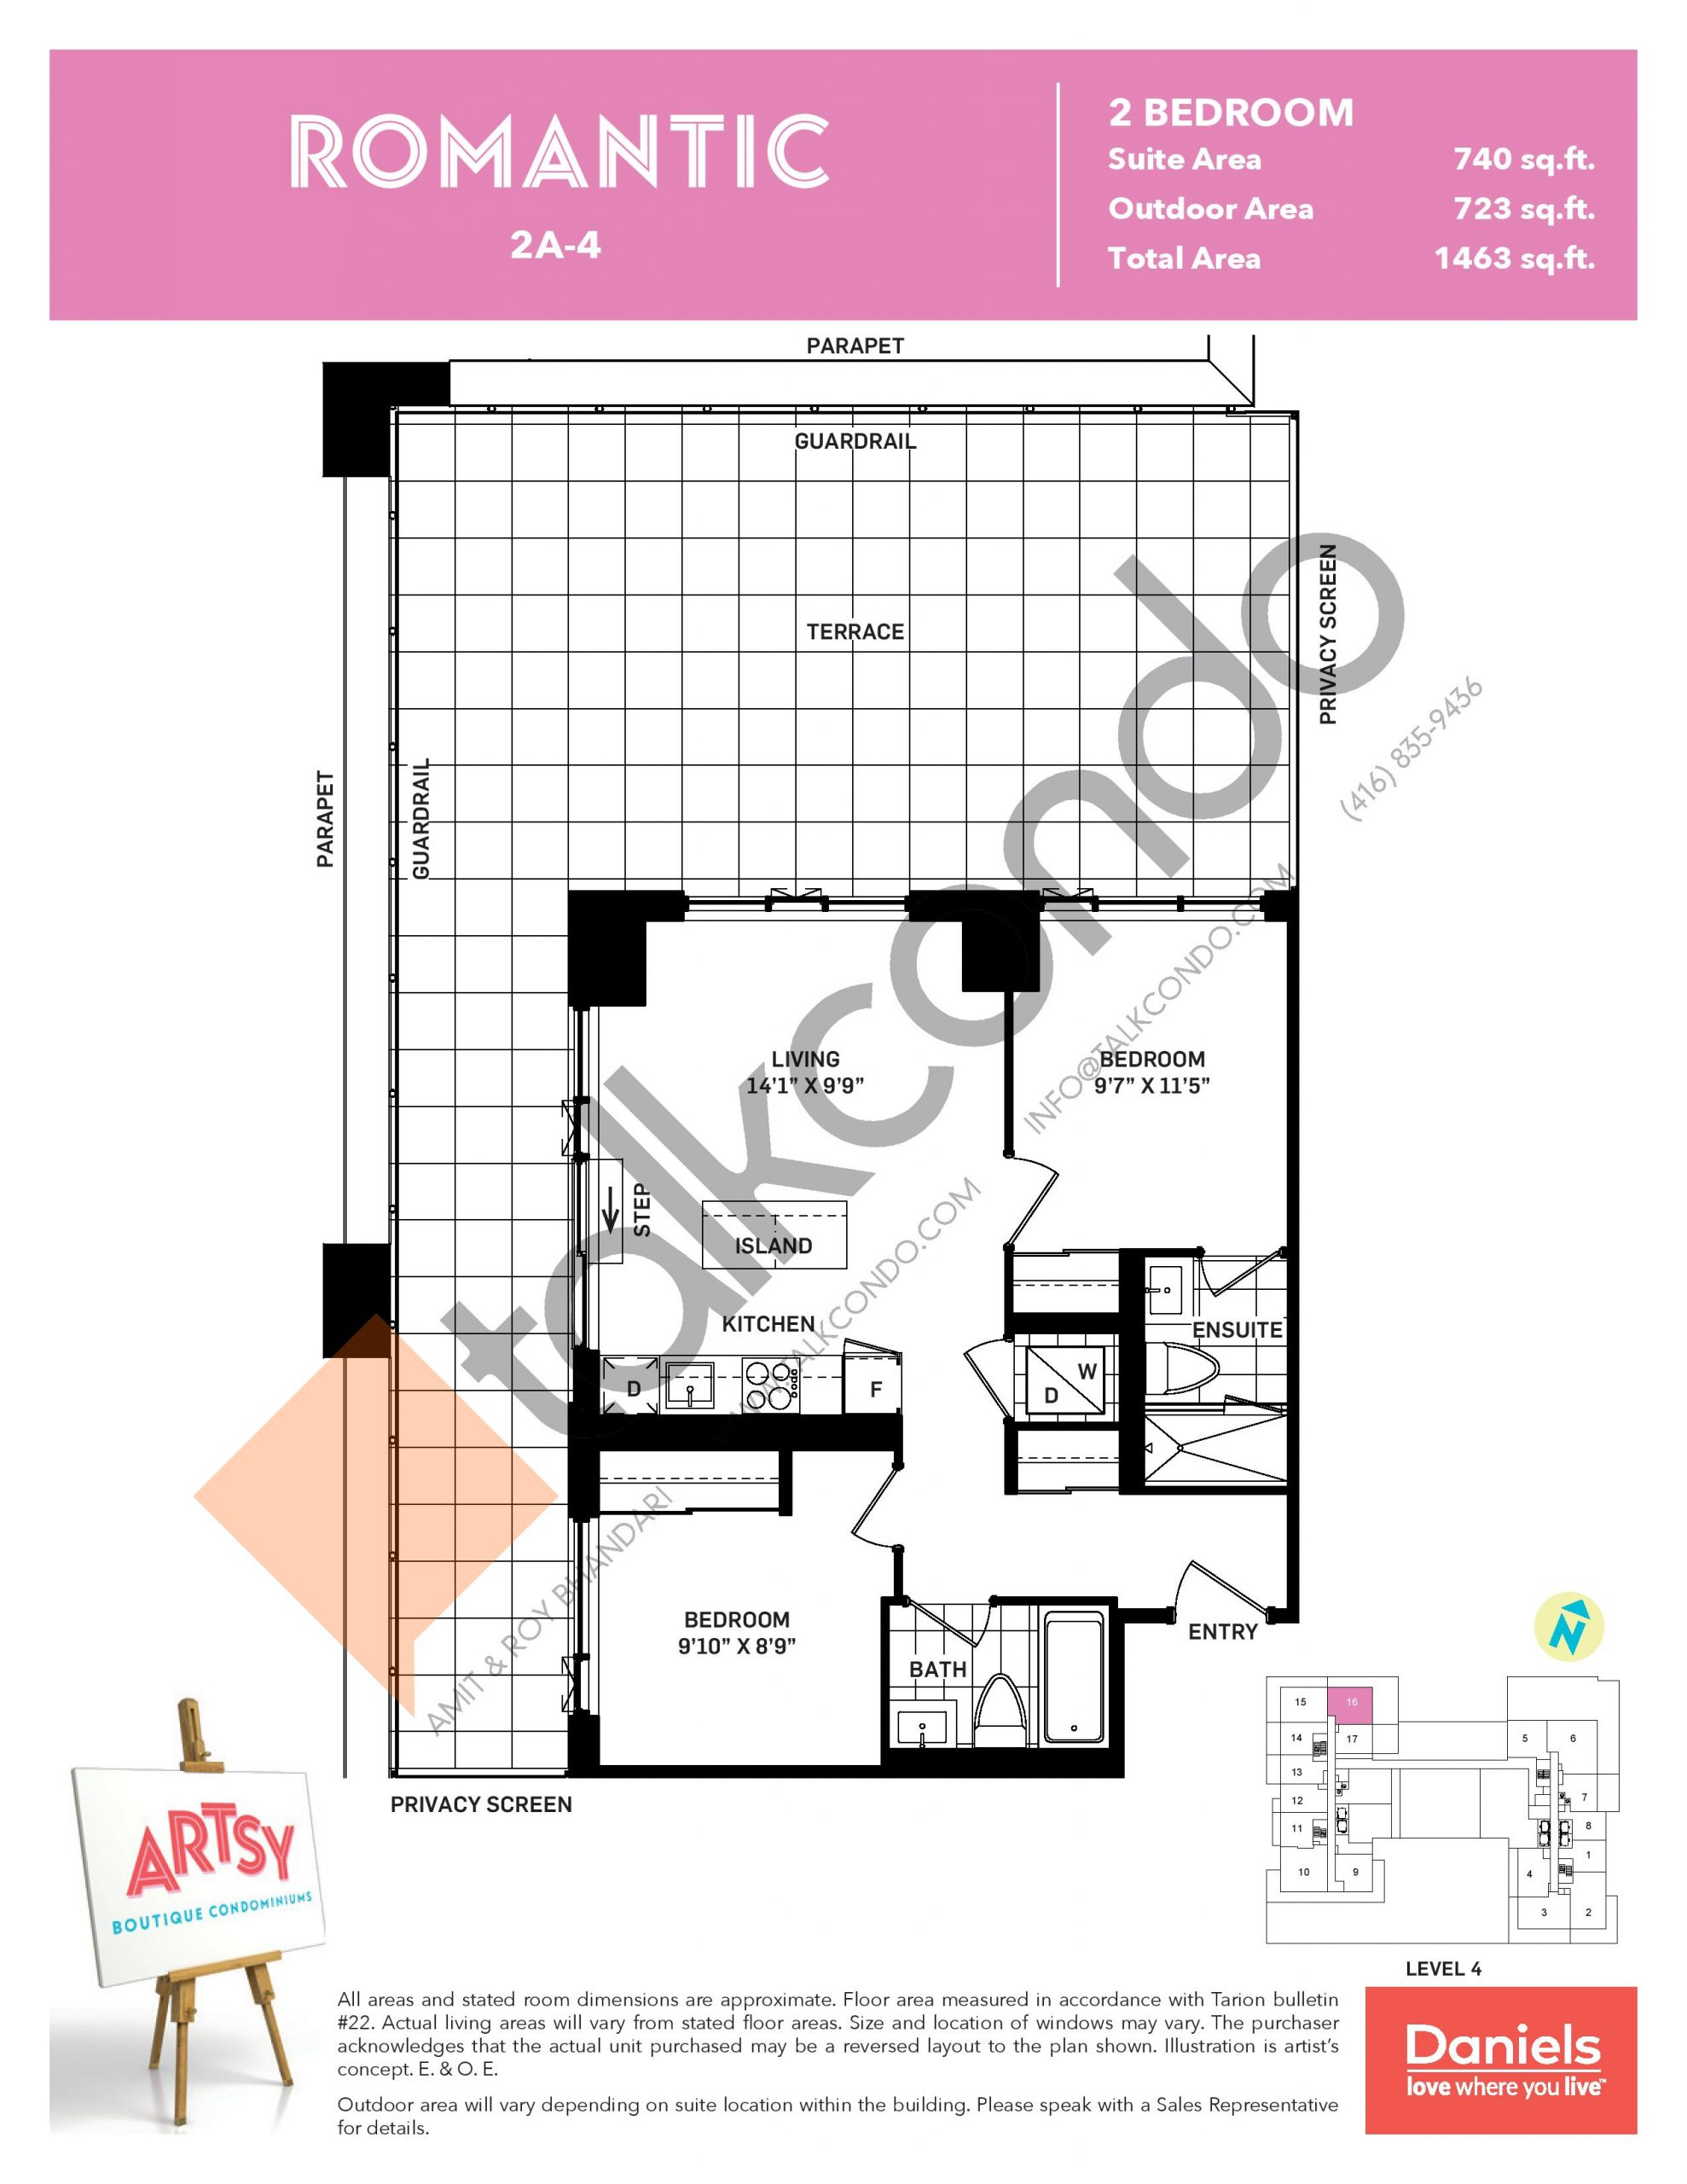 Romantic Floor Plan at Artsy Boutique Condos - 740 sq.ft